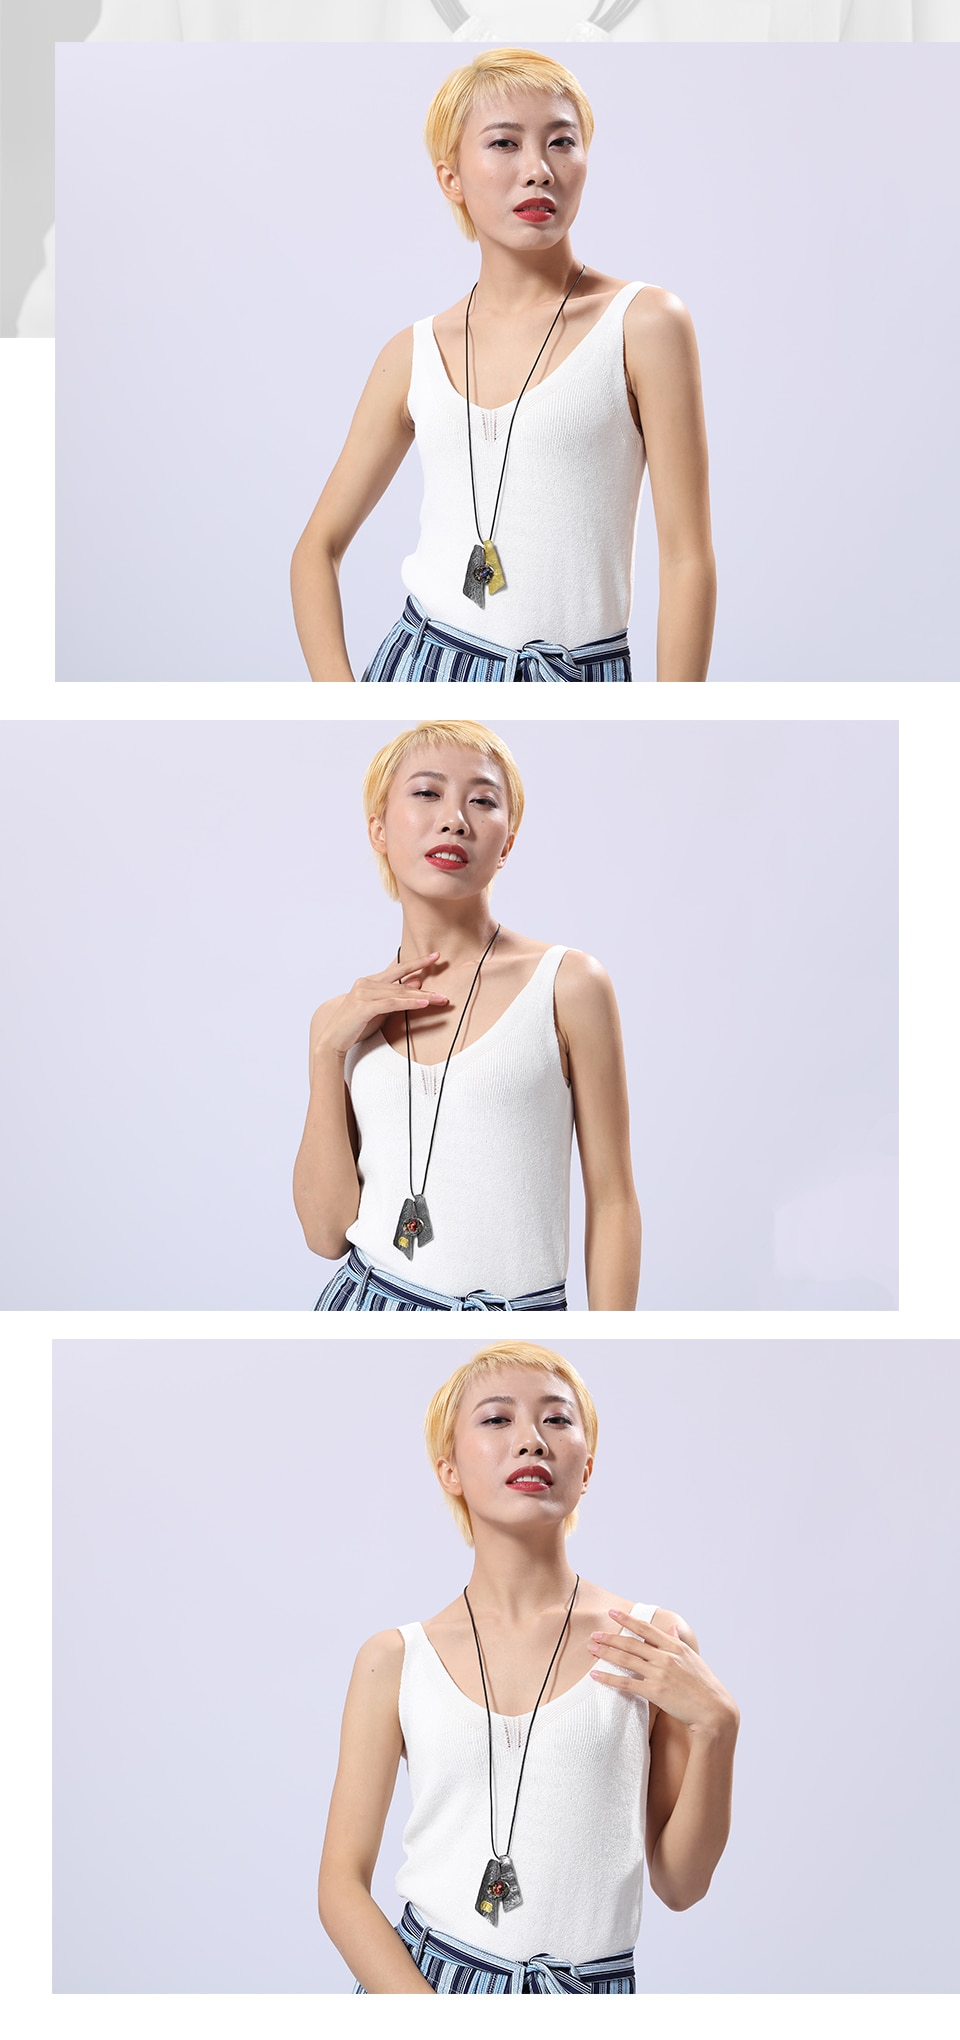 Vintage Long Necklace for Women Jewelry Pendants Colorful Natural Stone Rope Chain Accessories Zinc Alloy Fashion Wholesale 2020